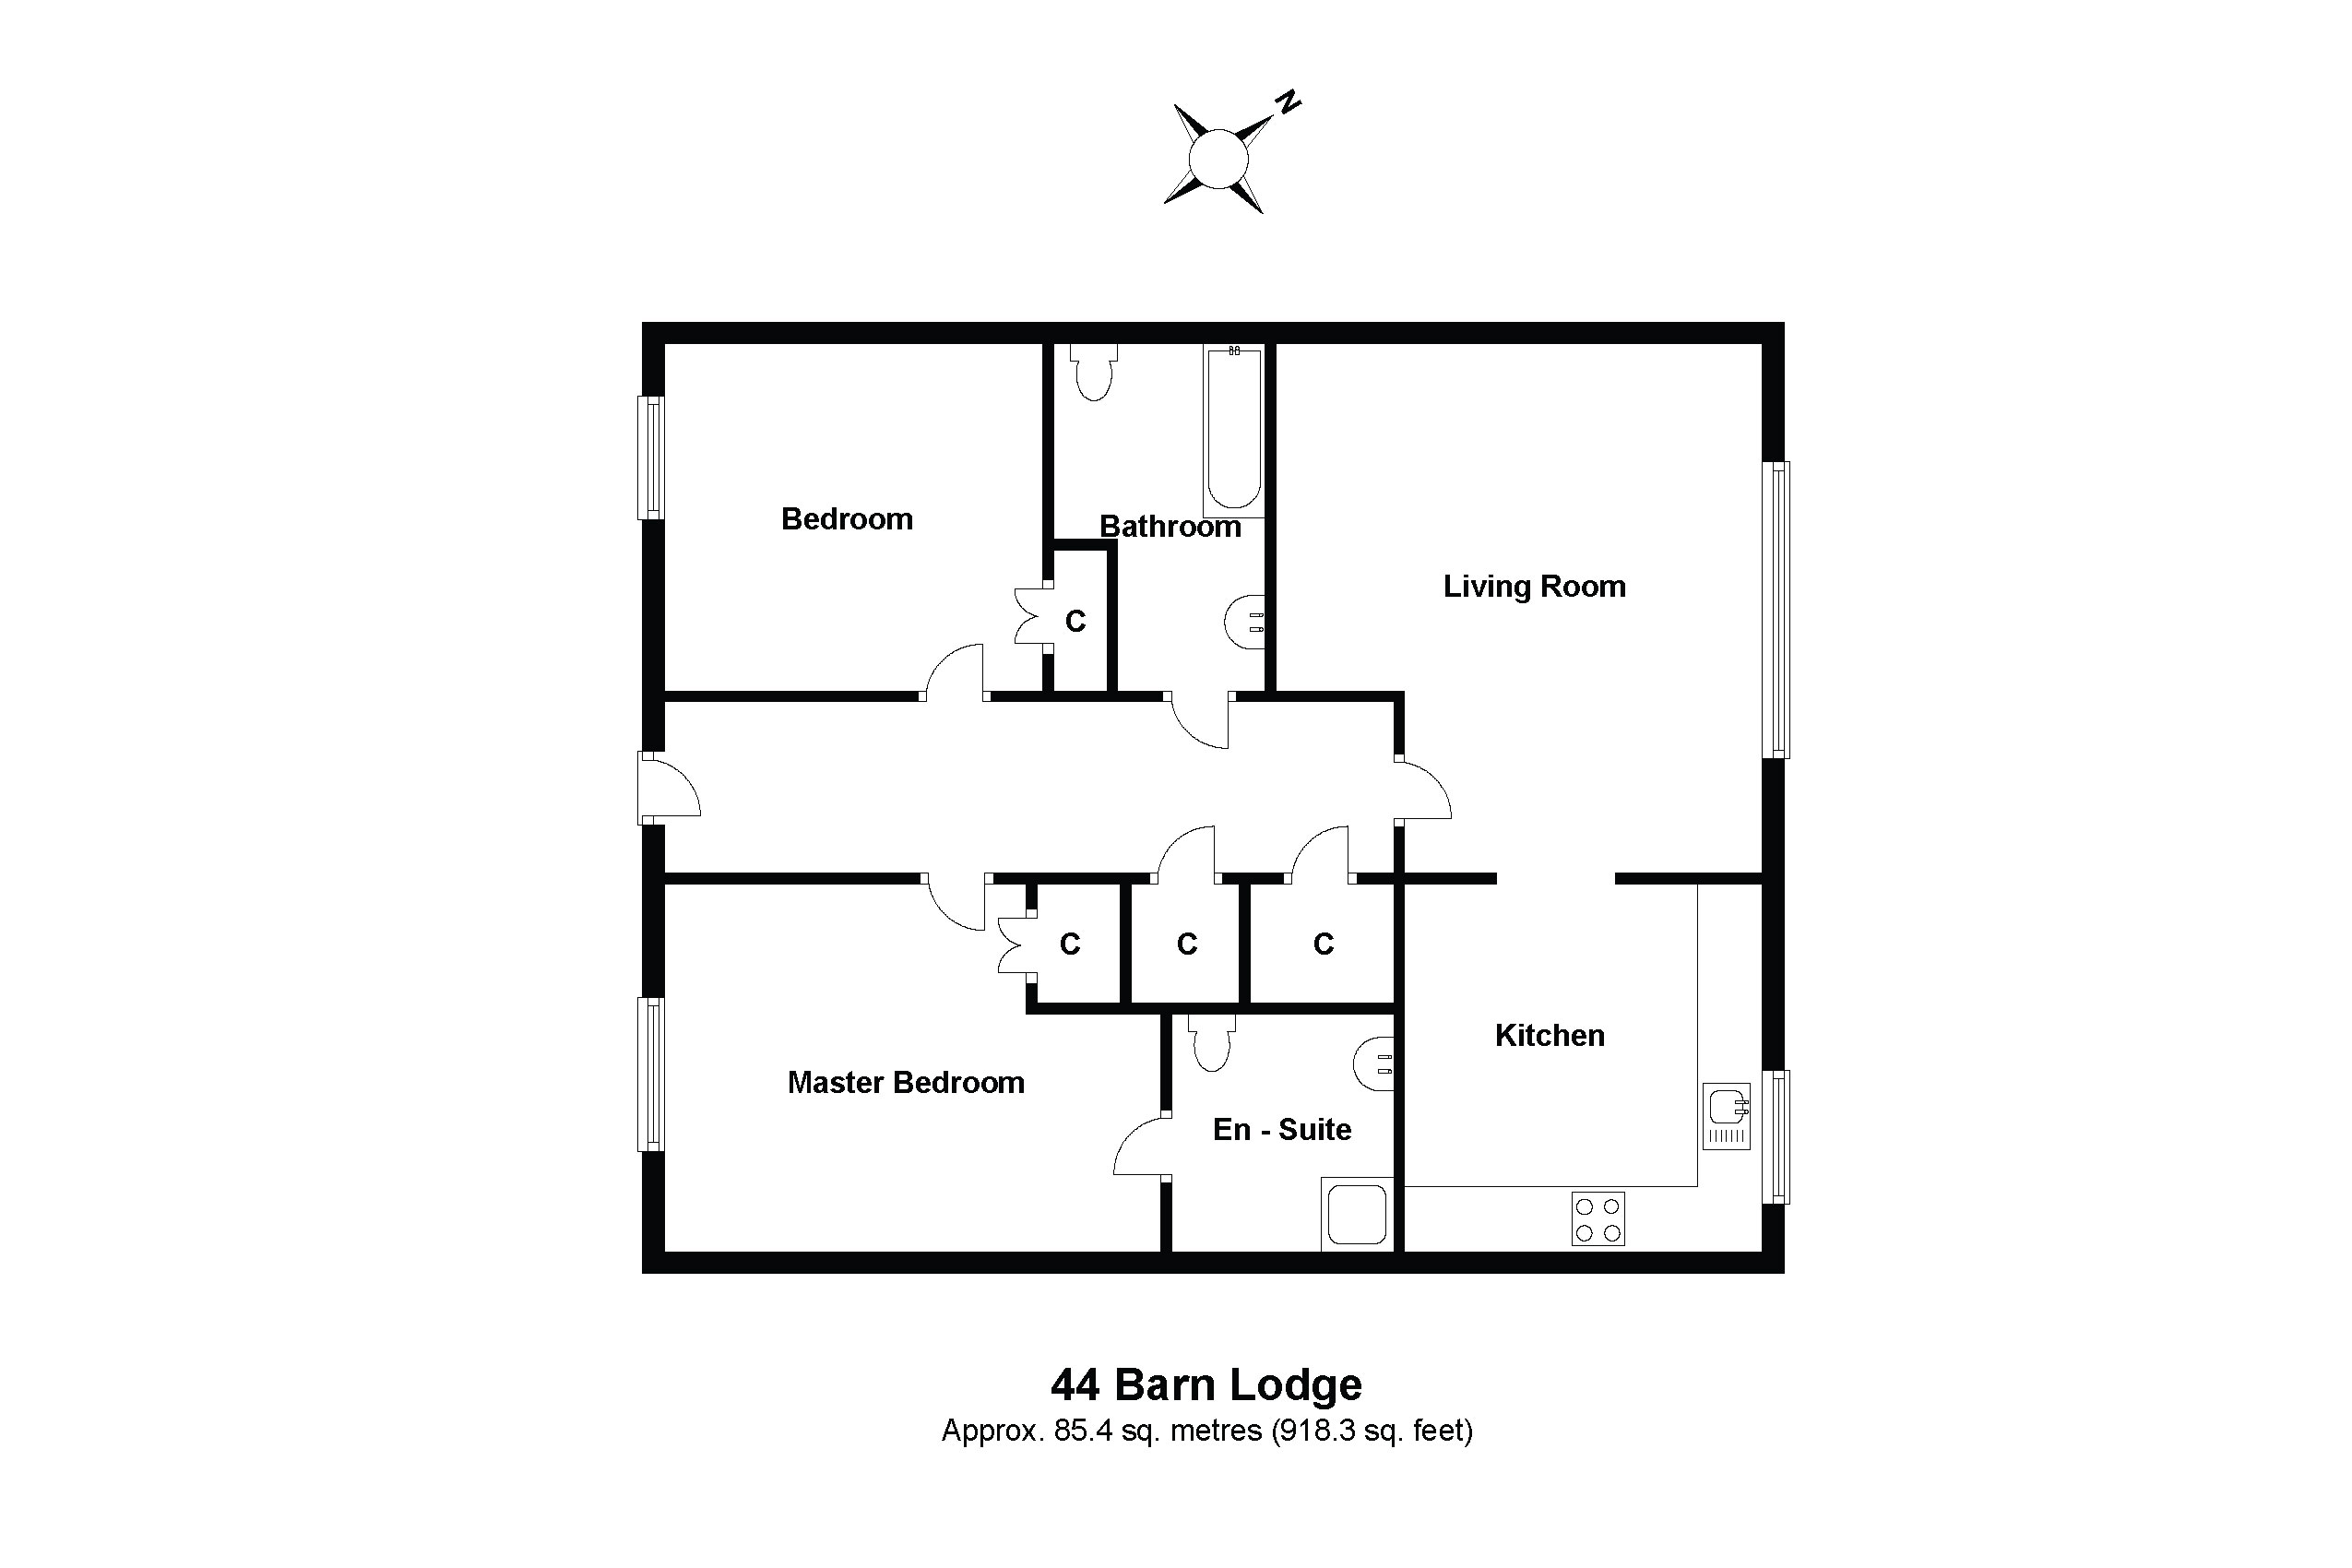 44 Barn Lodge Floorplan